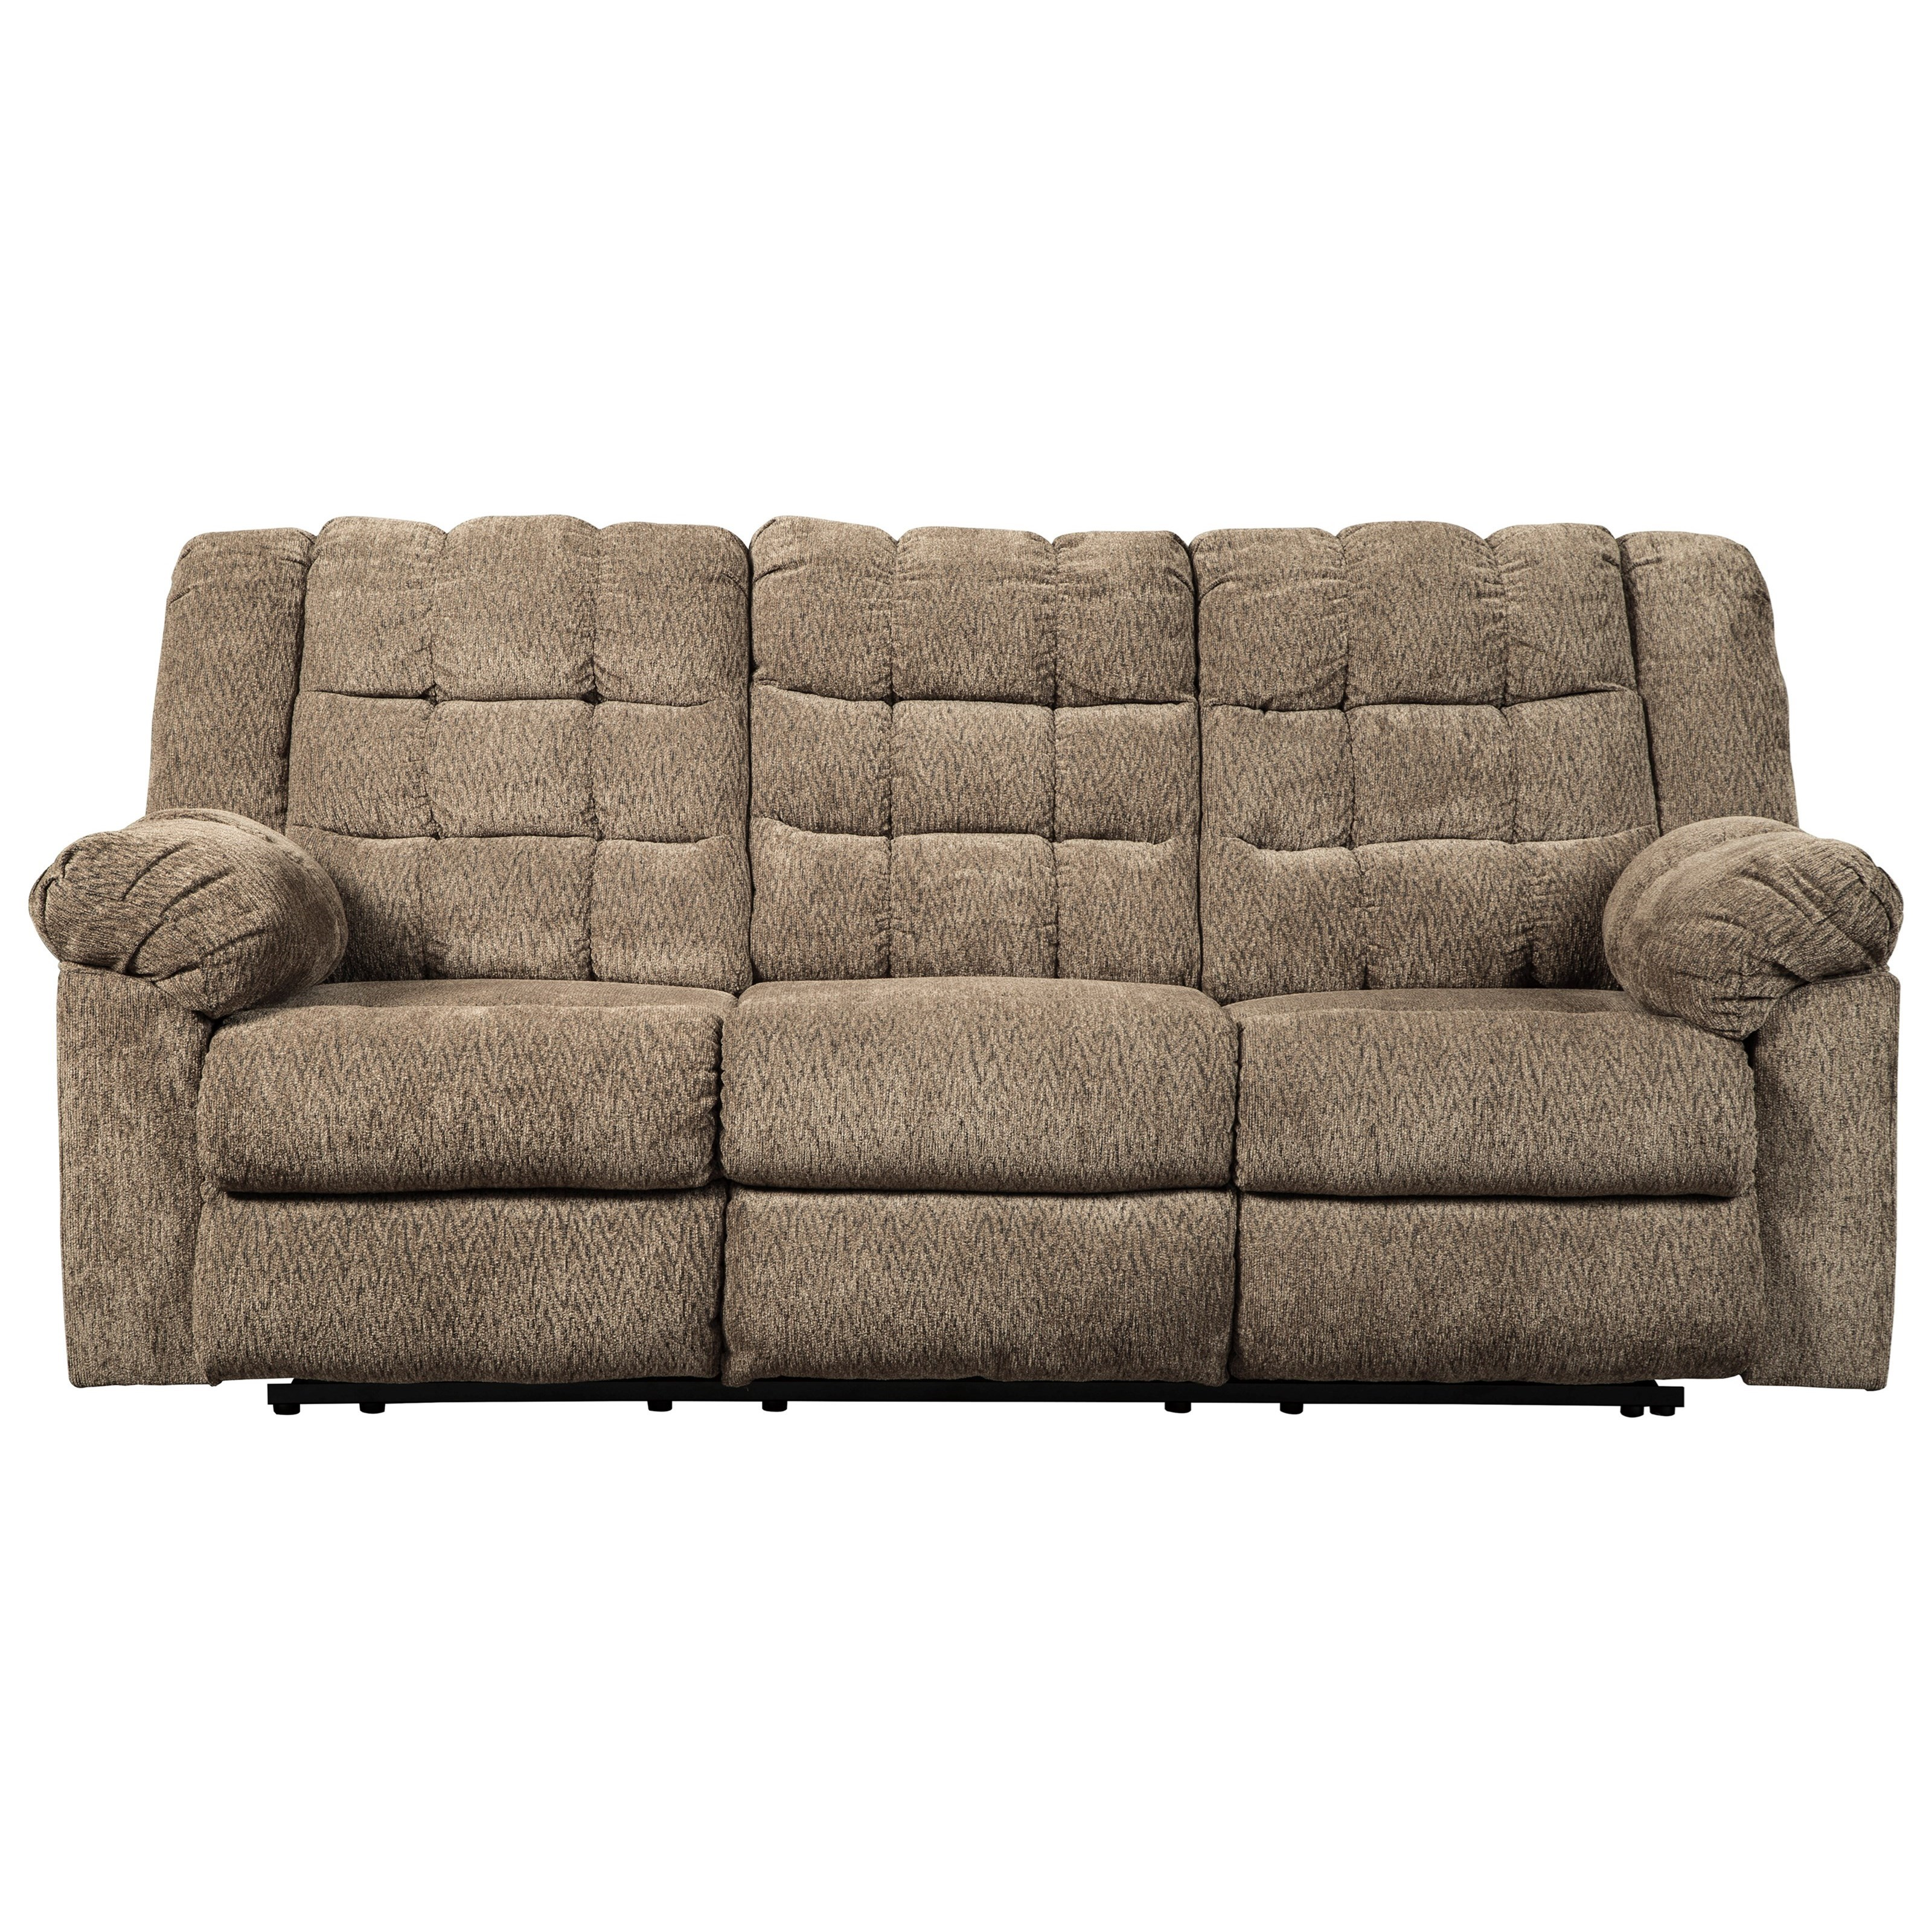 Signature design by ashley workhorse casual reclining sofa value city furniture reclining sofas - Sofa reclinable ...